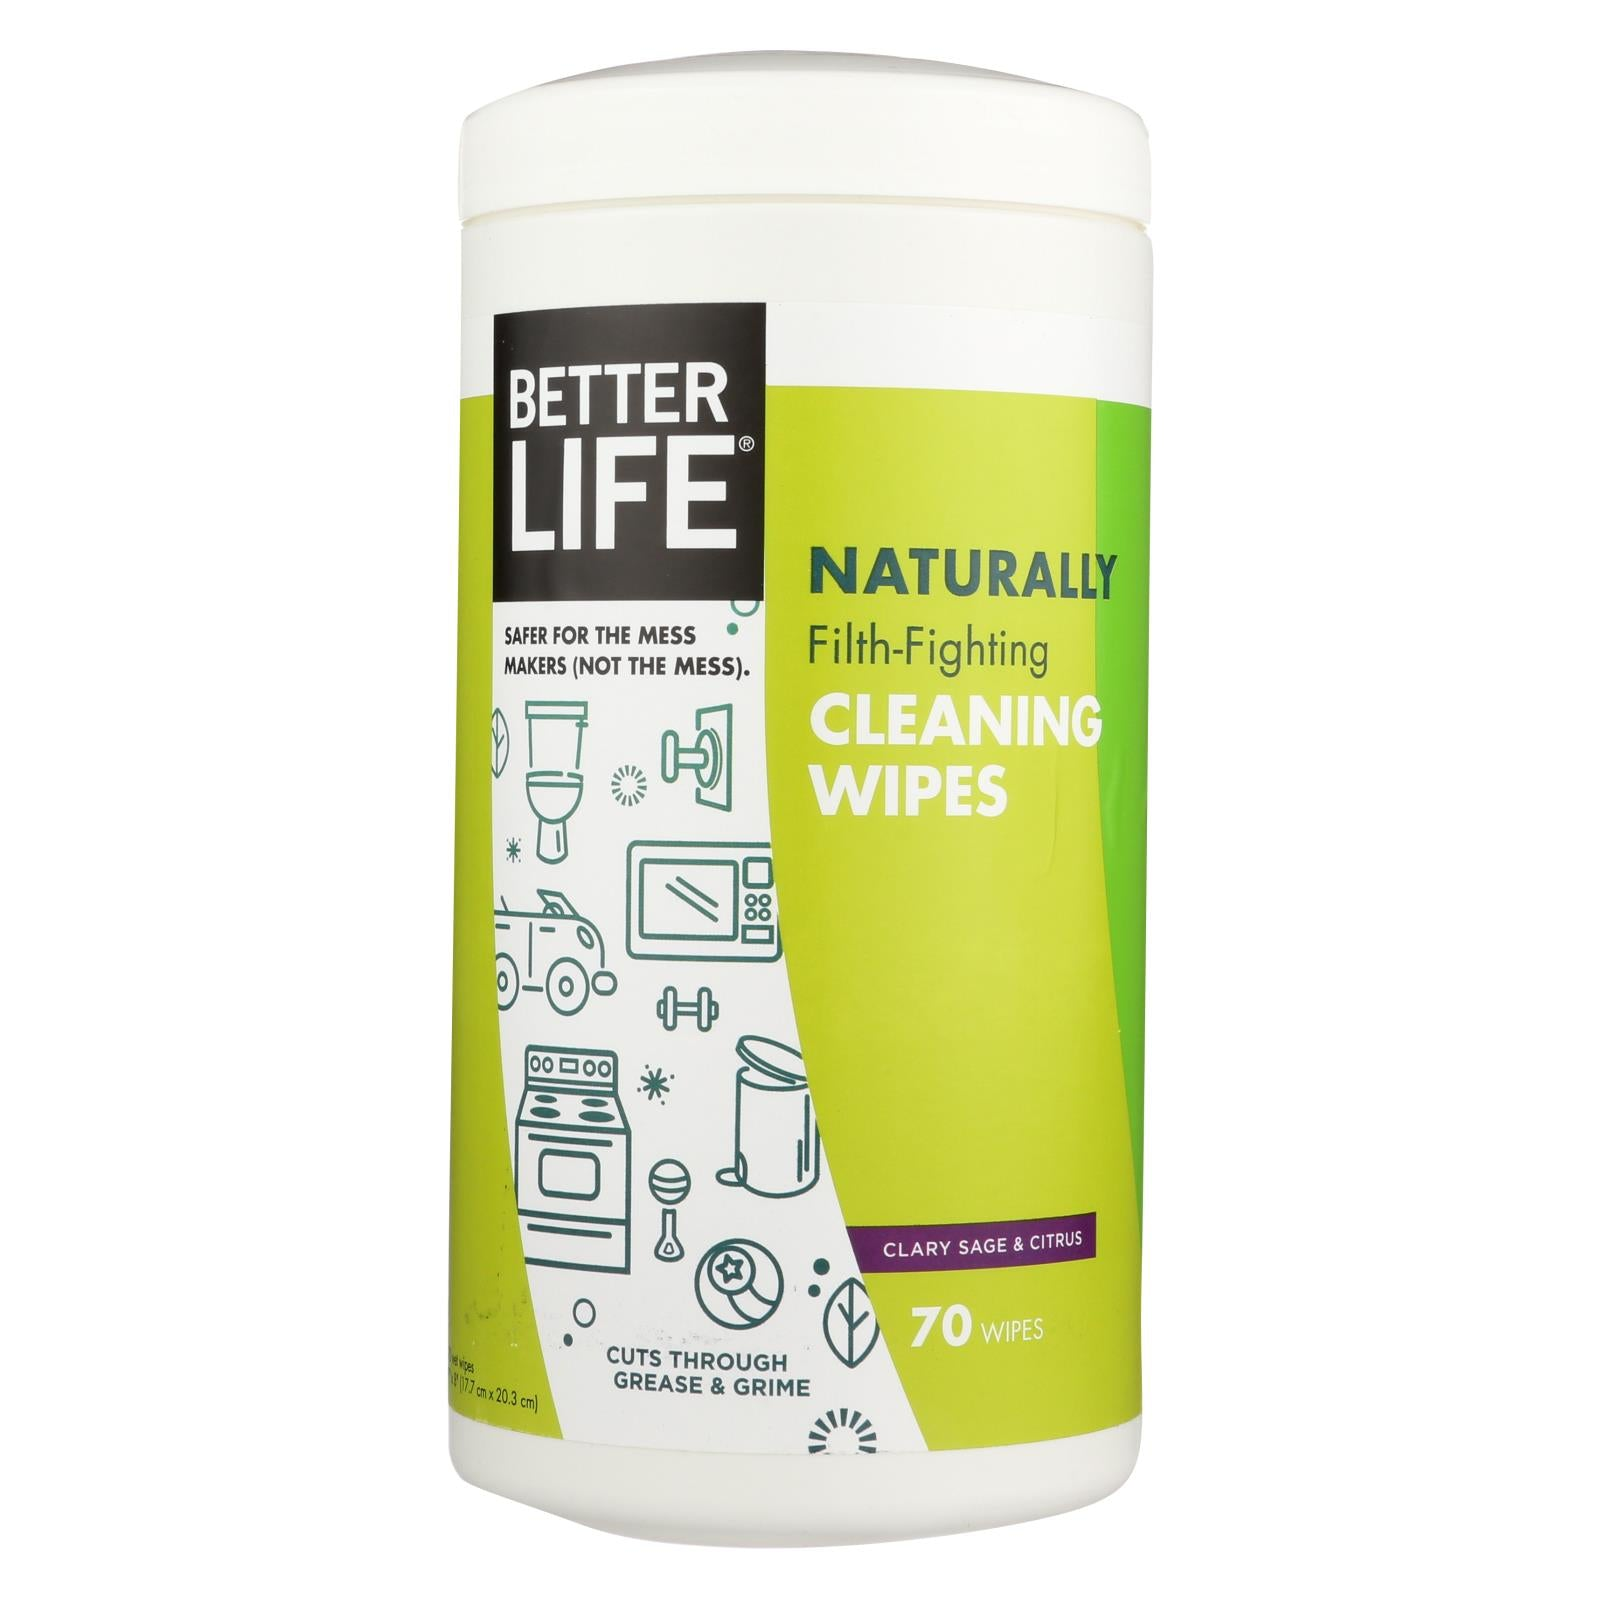 Better Life Cleaning Wipes - Naturally Filth - Fighting - Case Of 6 - 70 Count HG1780162